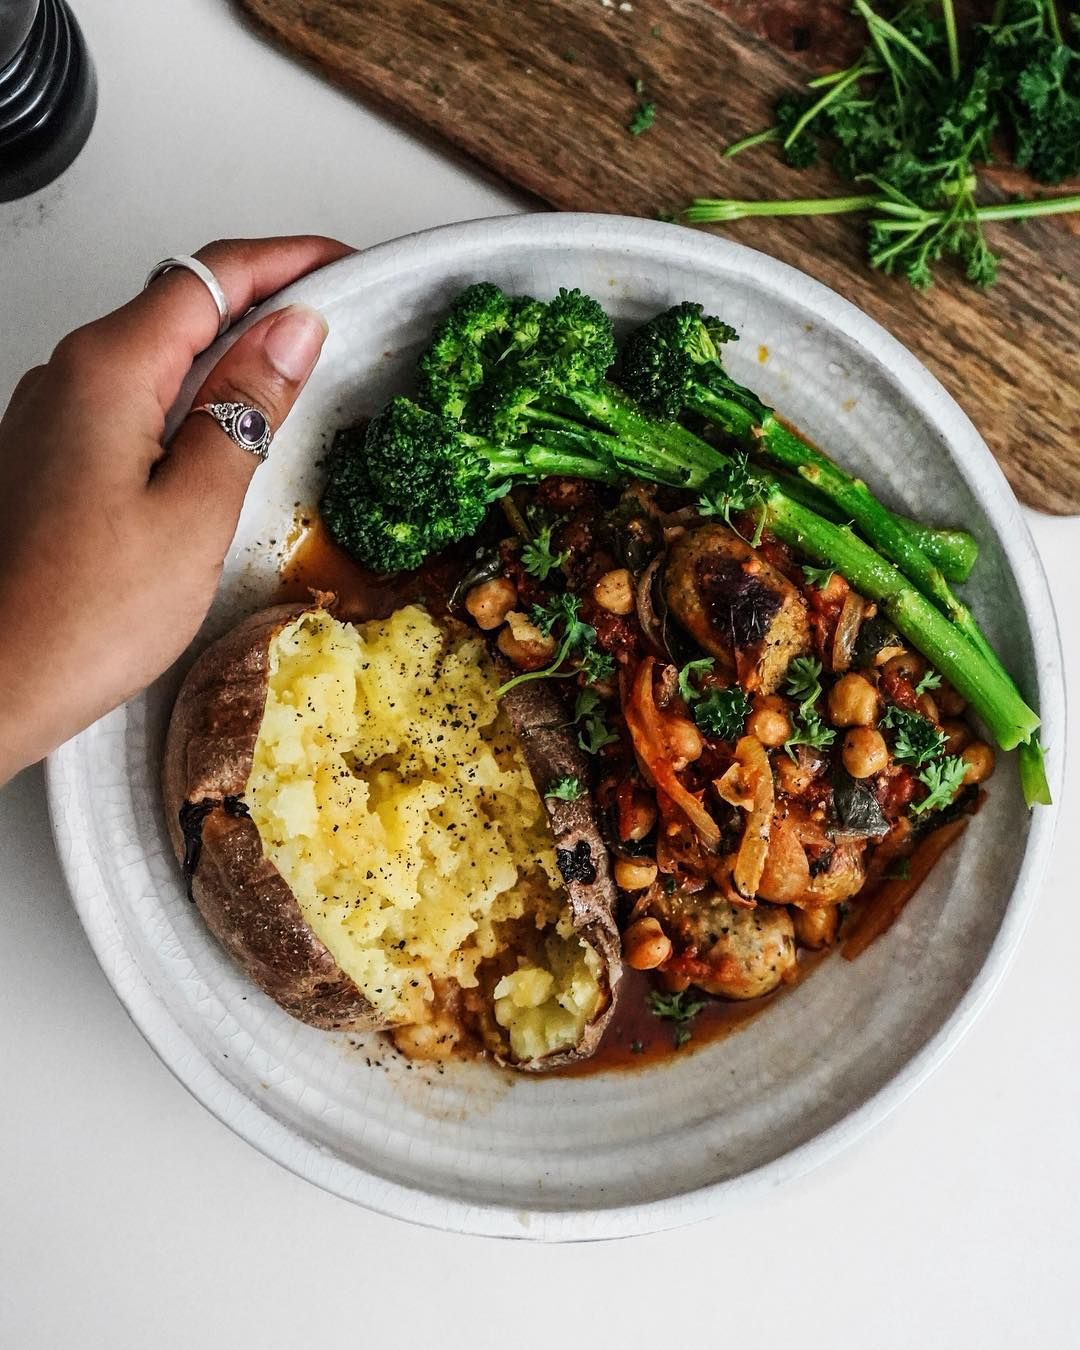 Rachel Ama On Instagram Plant Based Sausage Casserole With